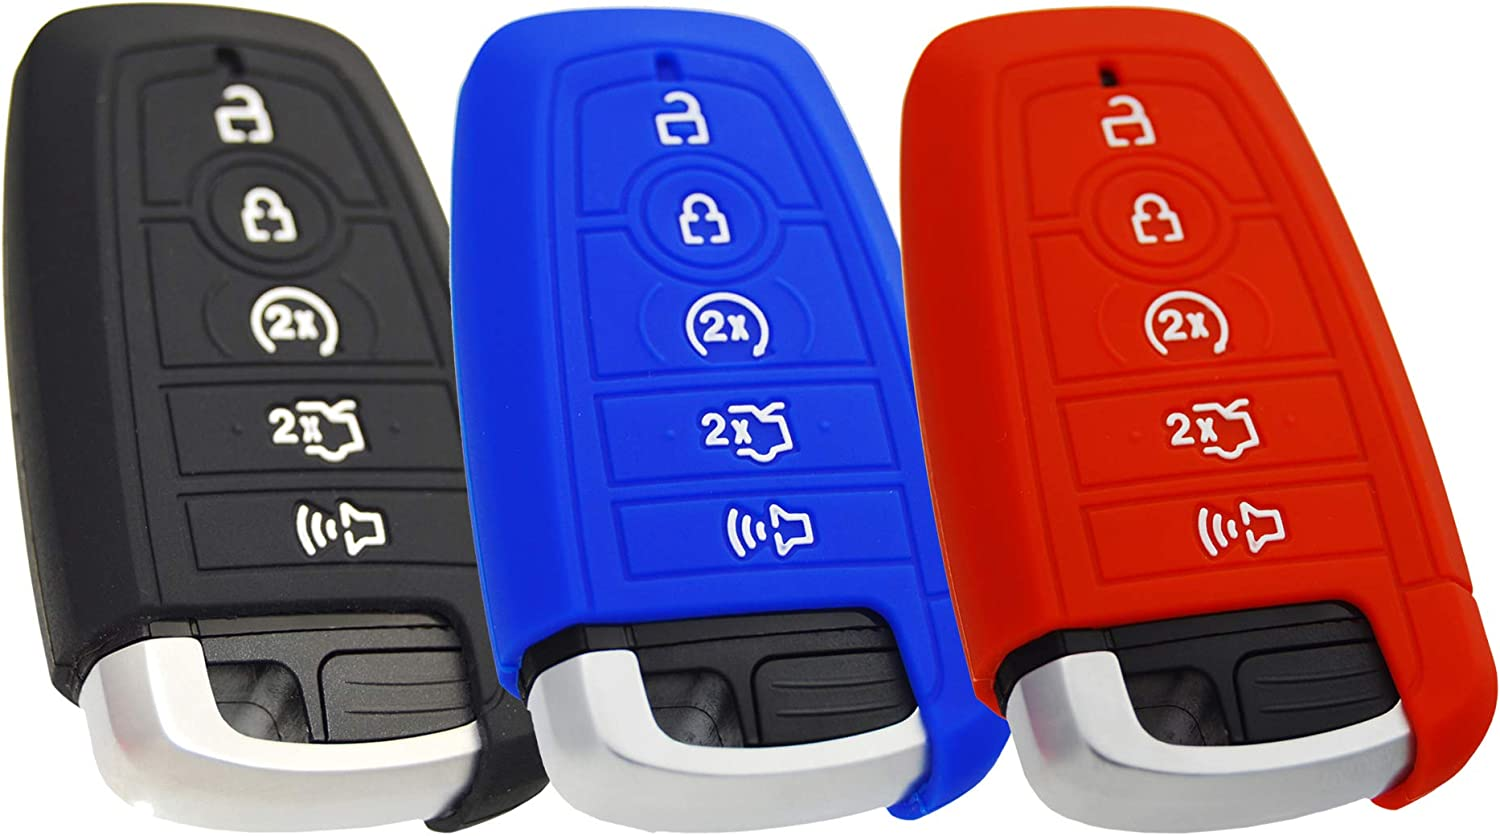 Silicone Key Fob Cover Protector for Ford Mustang Fusion Raptor F150 F250 Explorer Expedition Bronco /& Lincoln Aviator Corsair 2020